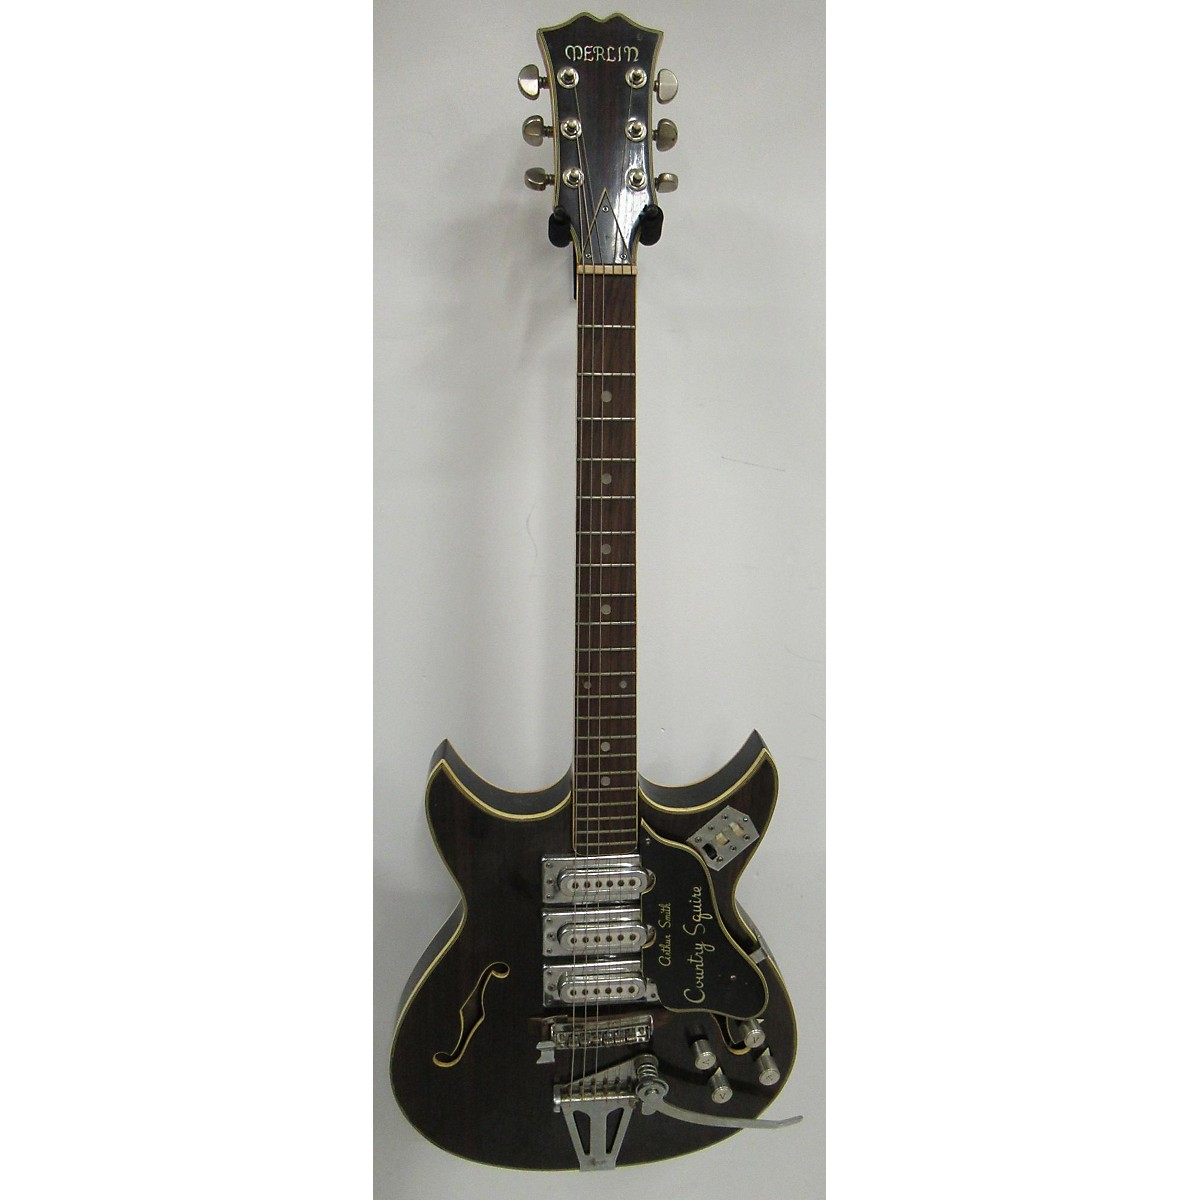 In Store Vintage Vintage 1960s Merlin Arthur Smith Country Squire Walnut Hollow Body Electric Guitar